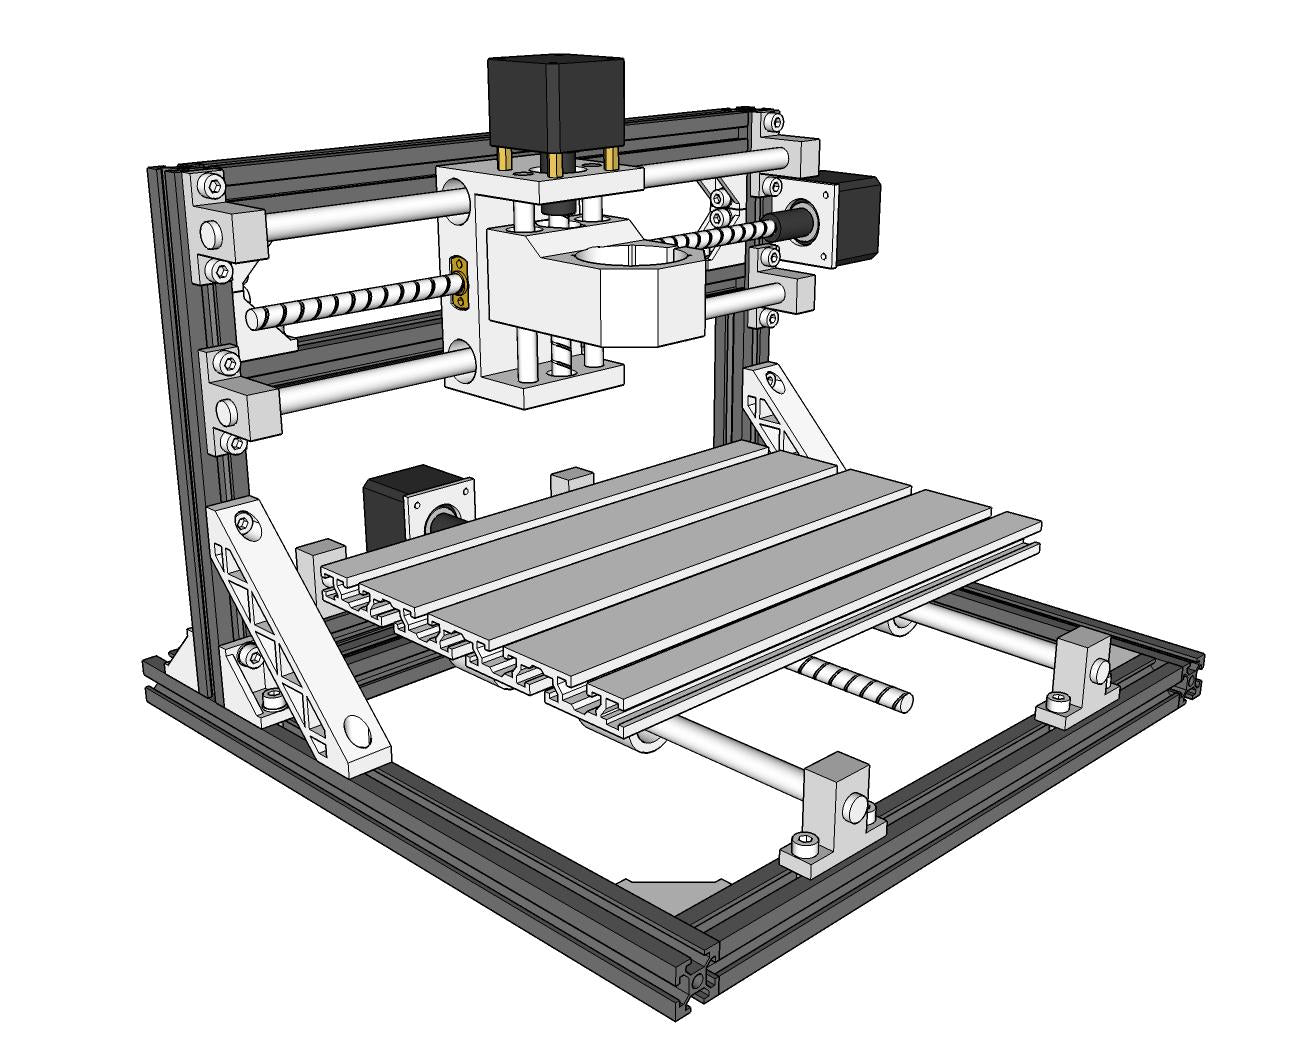 CNC Assembly Instructions